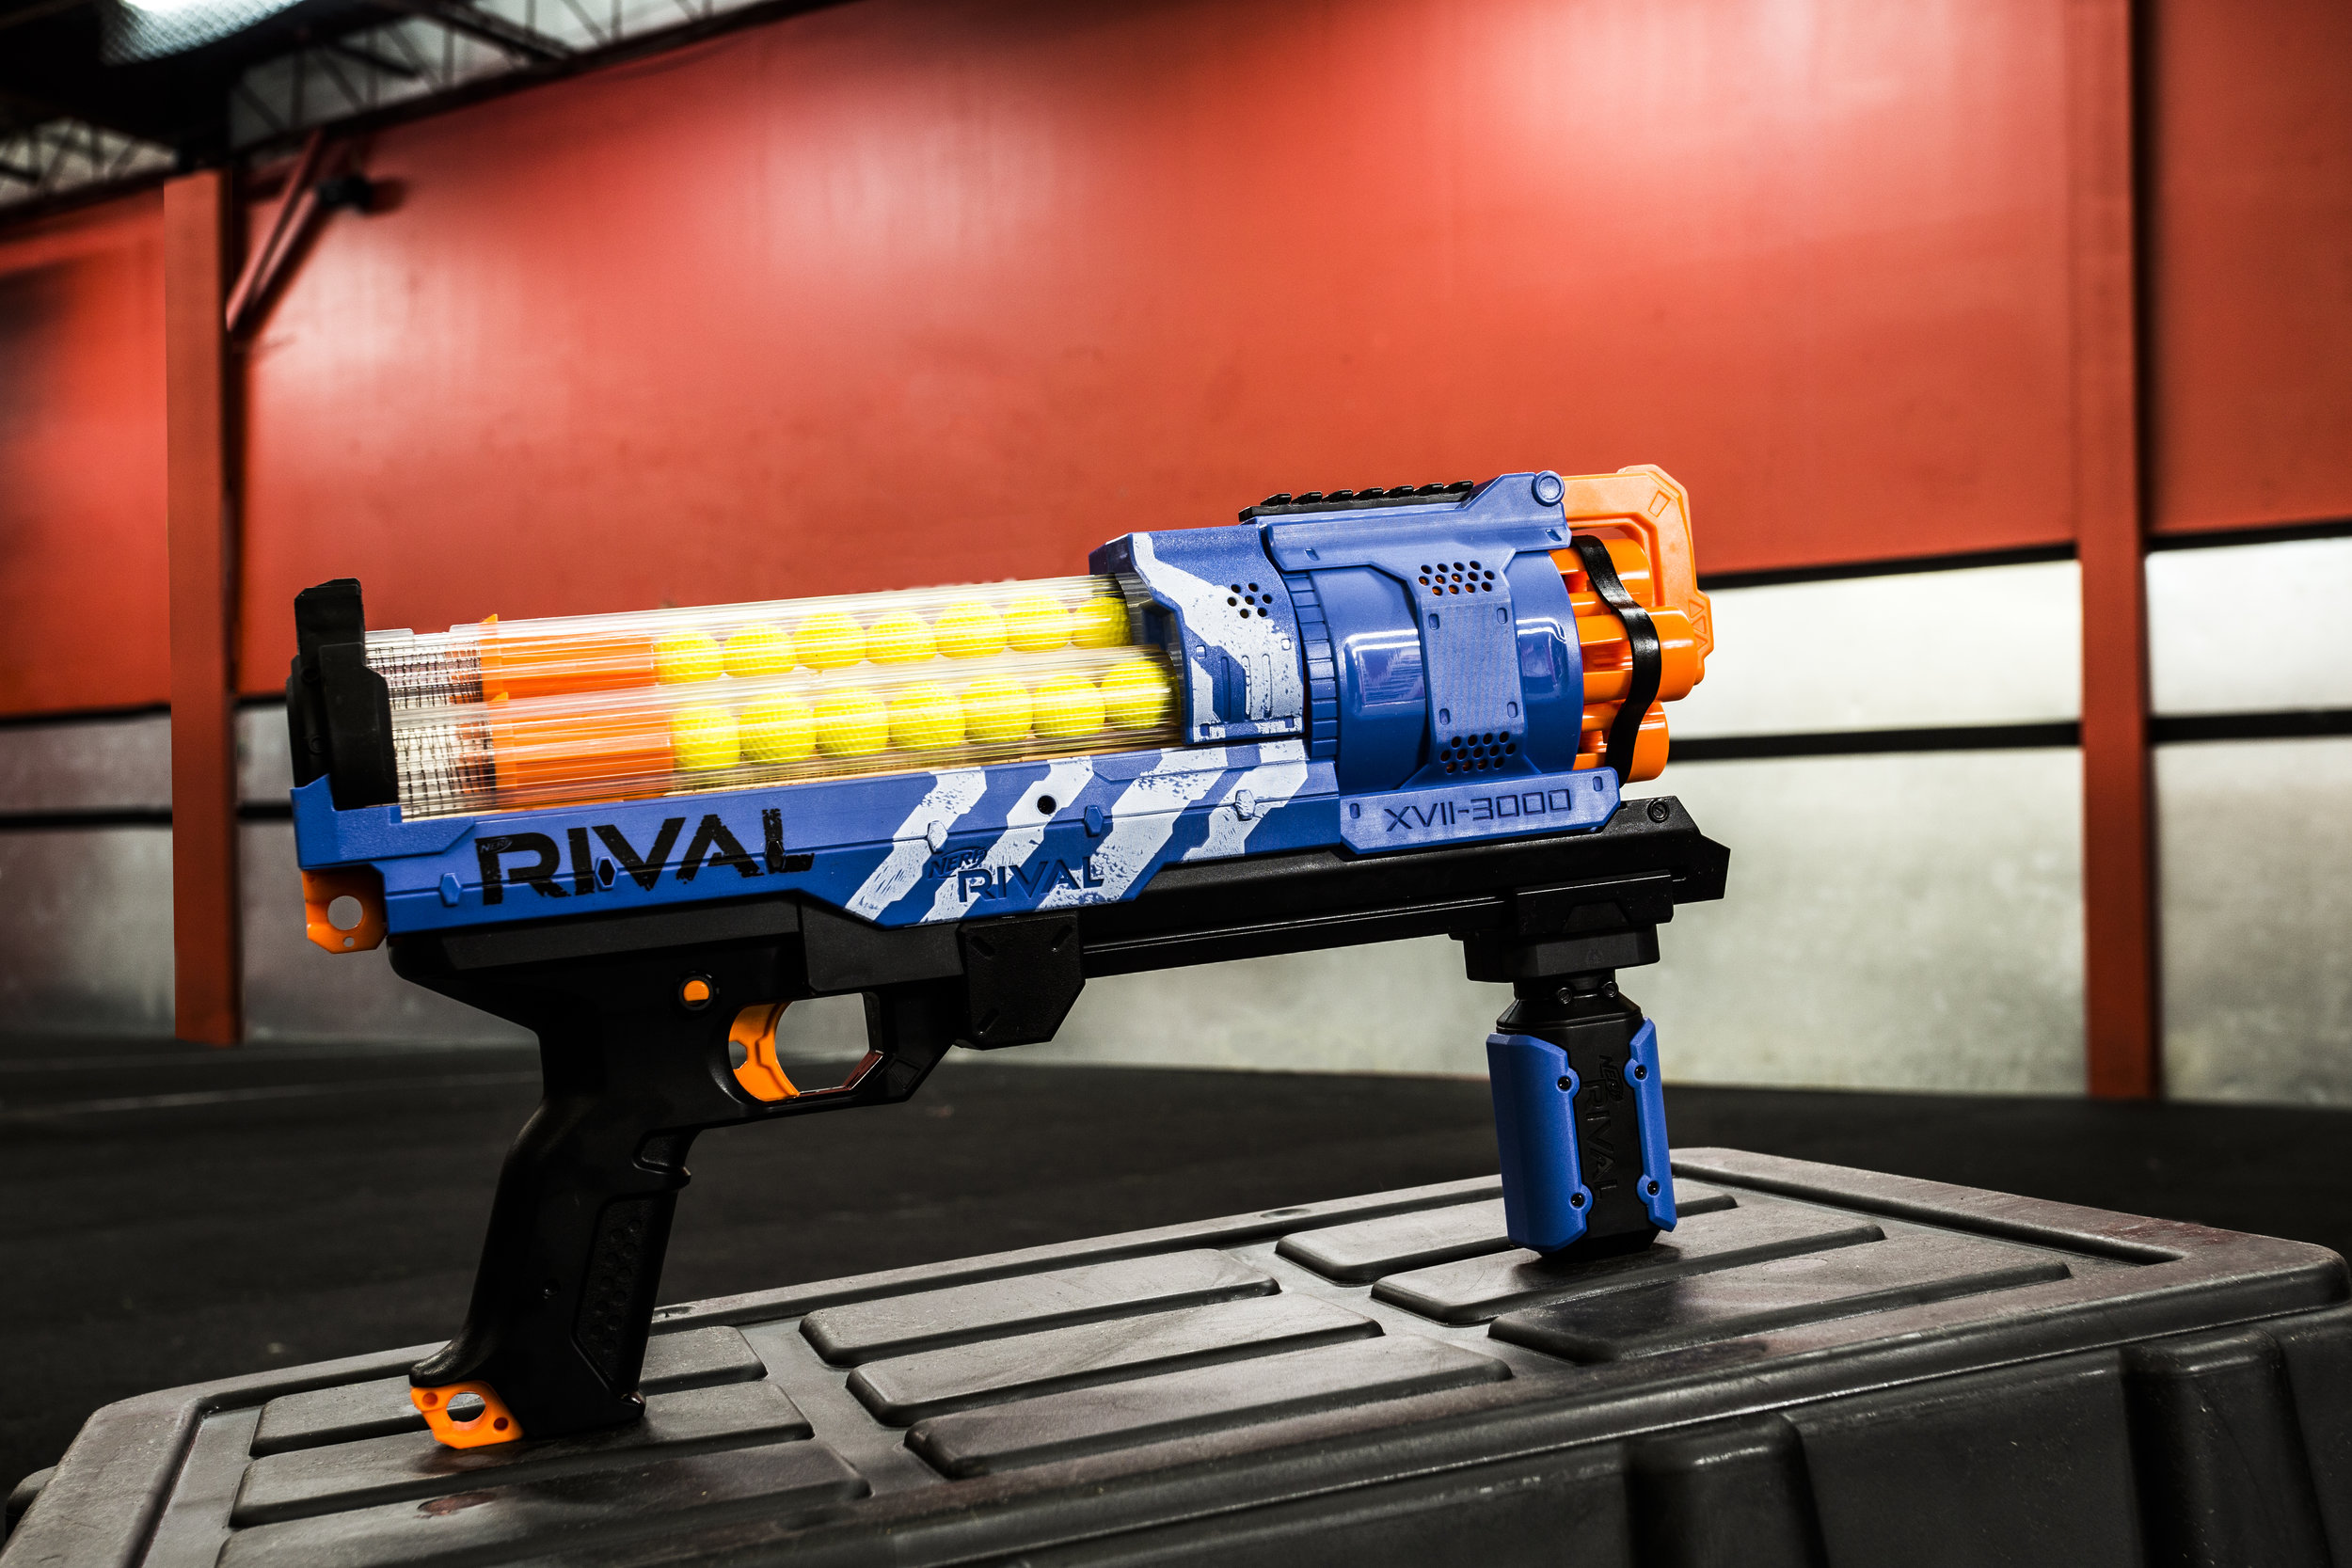 toronto nerf wars blue rival xvii-3000 archers arena nerf combat.jpg